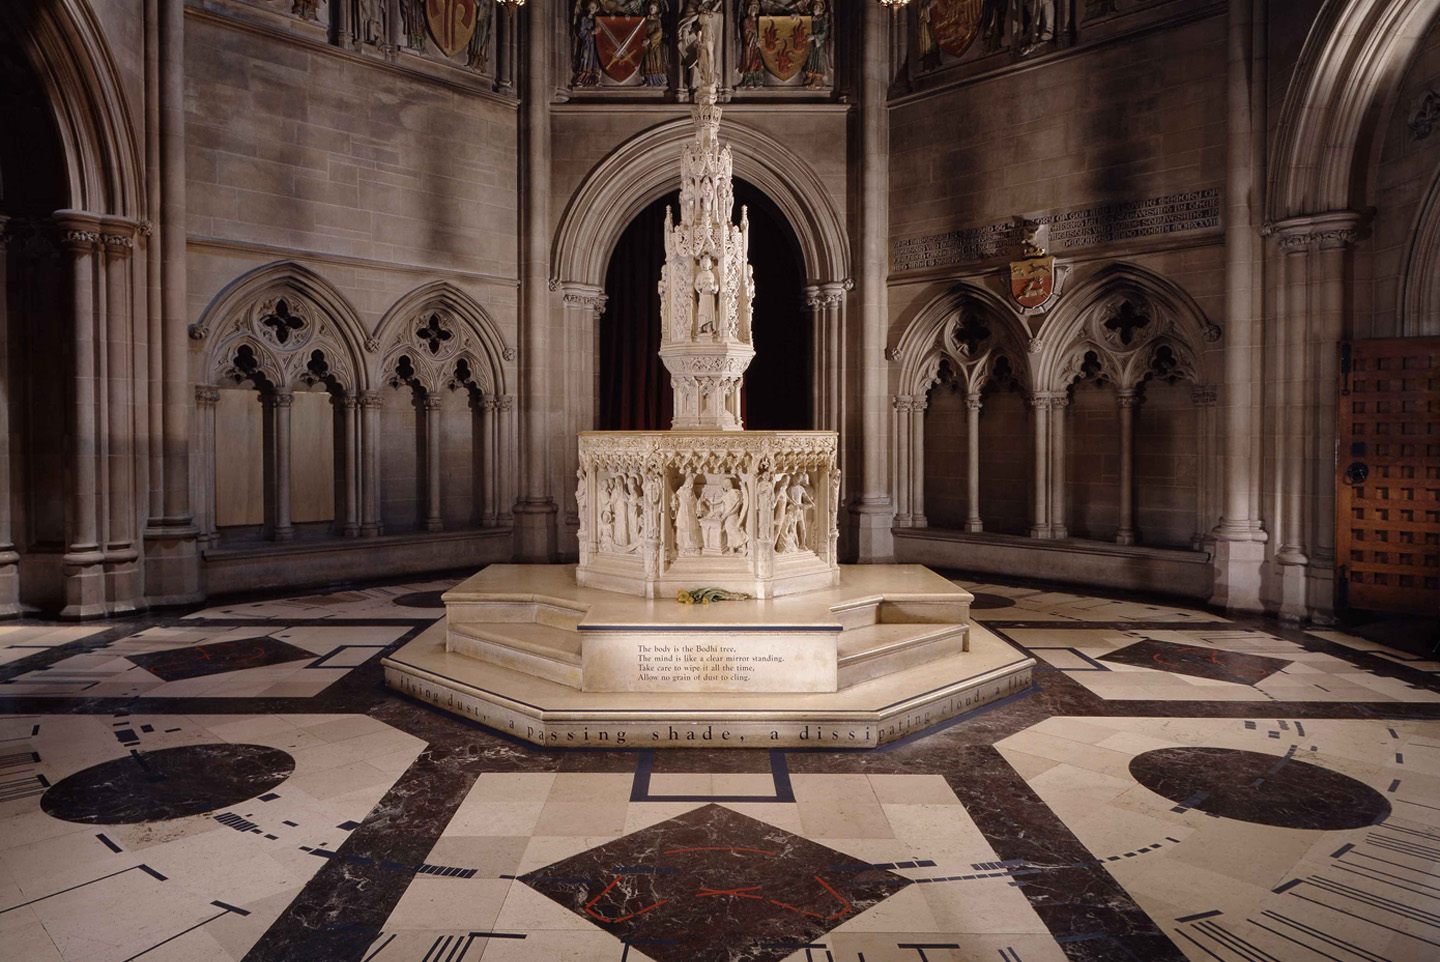 A Threshold of Spirit , 2001. Installation, Cathedral of St. John the Divine, NY.